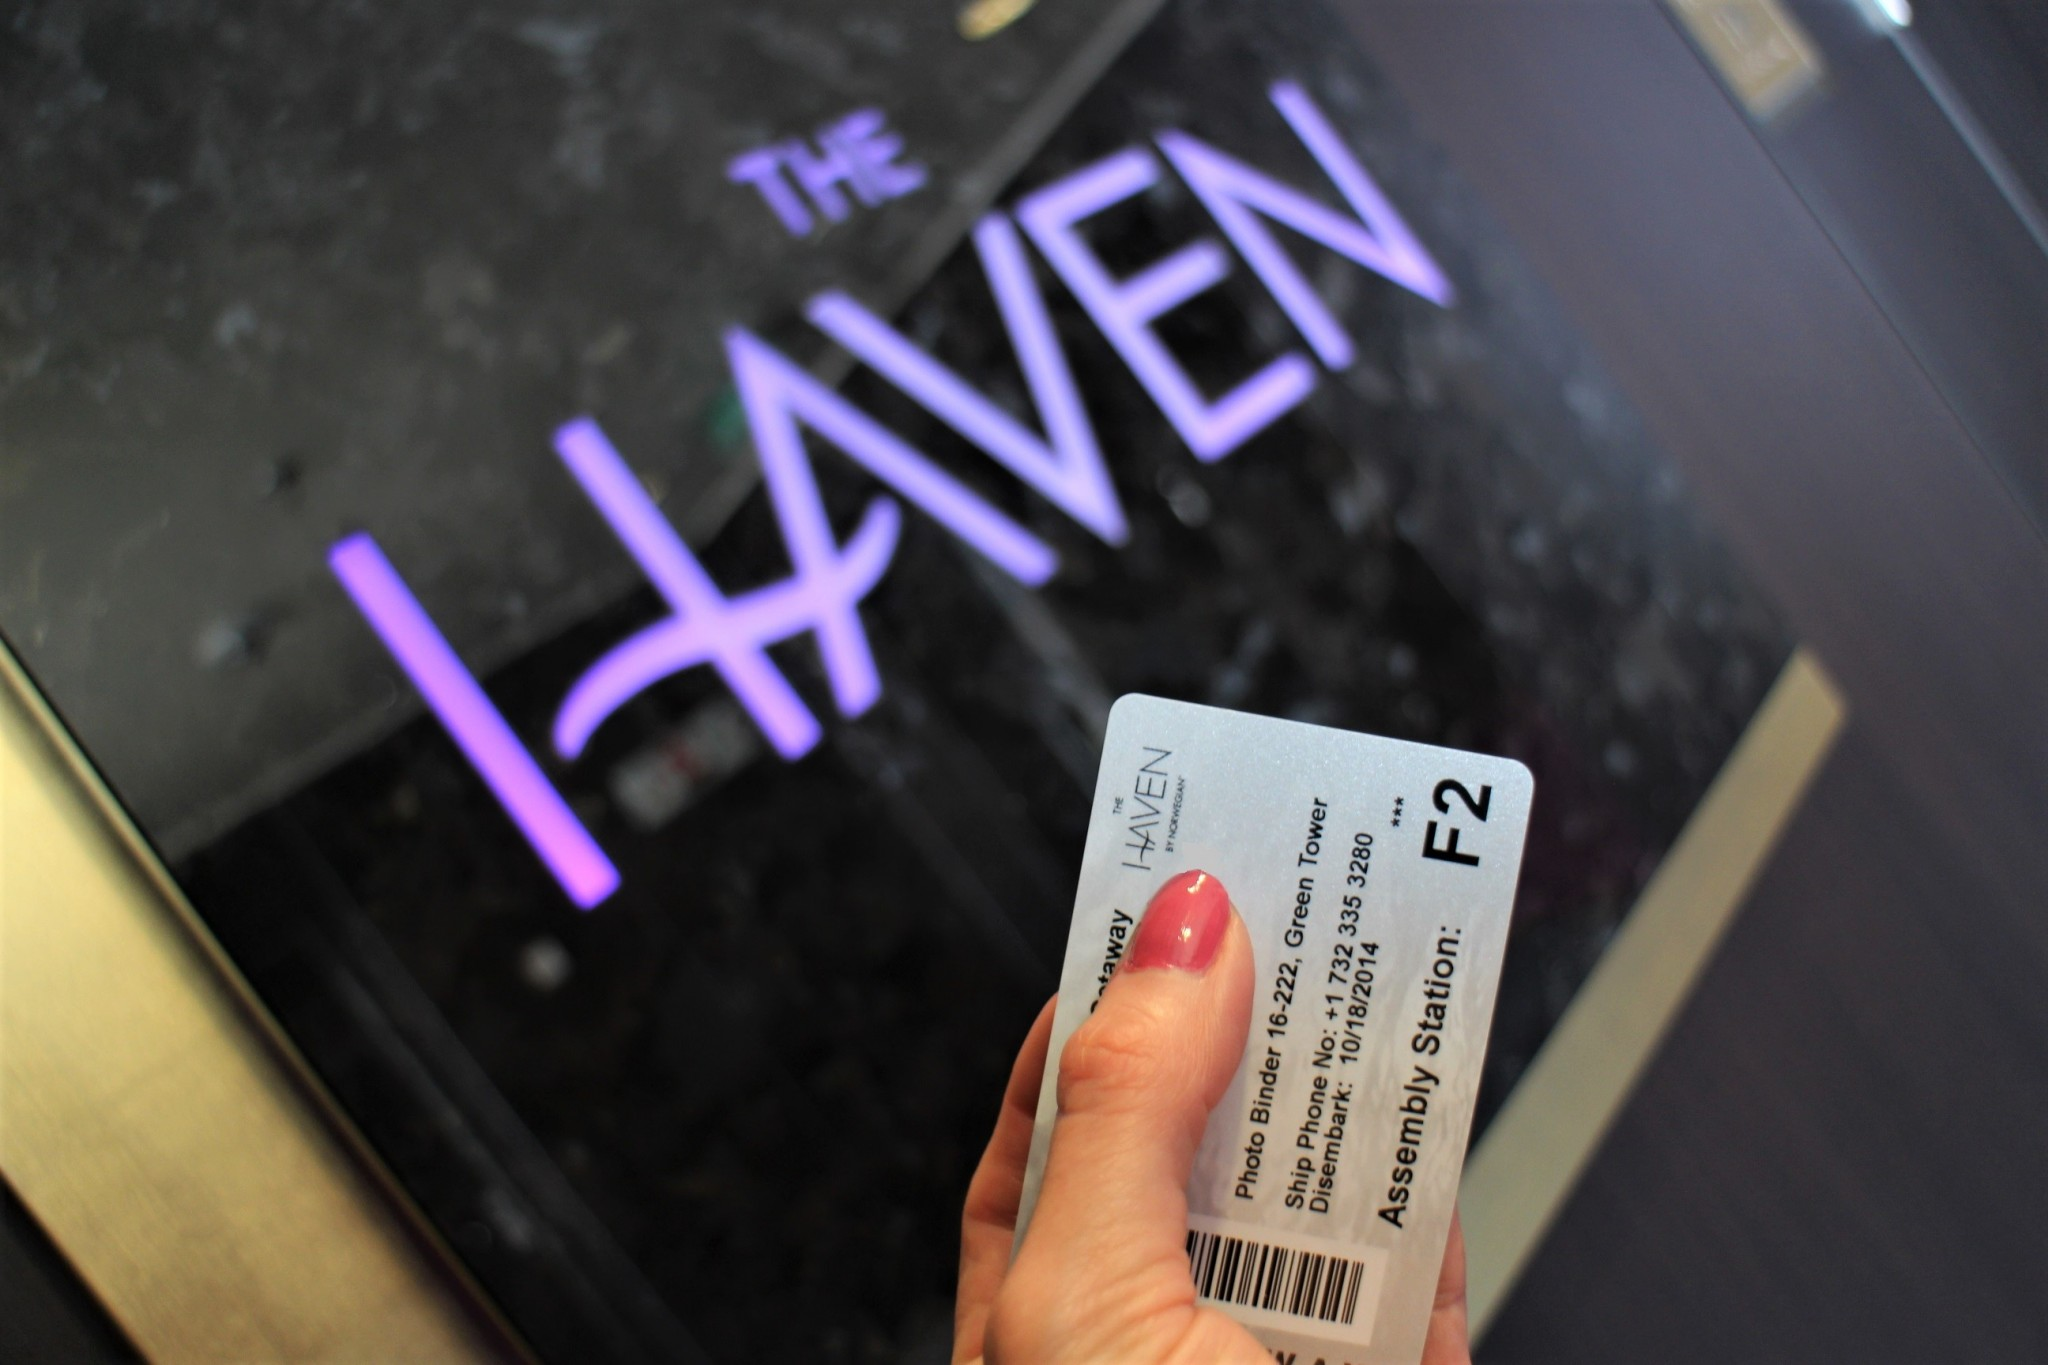 Norwegian Getaway The Haven Platinum card